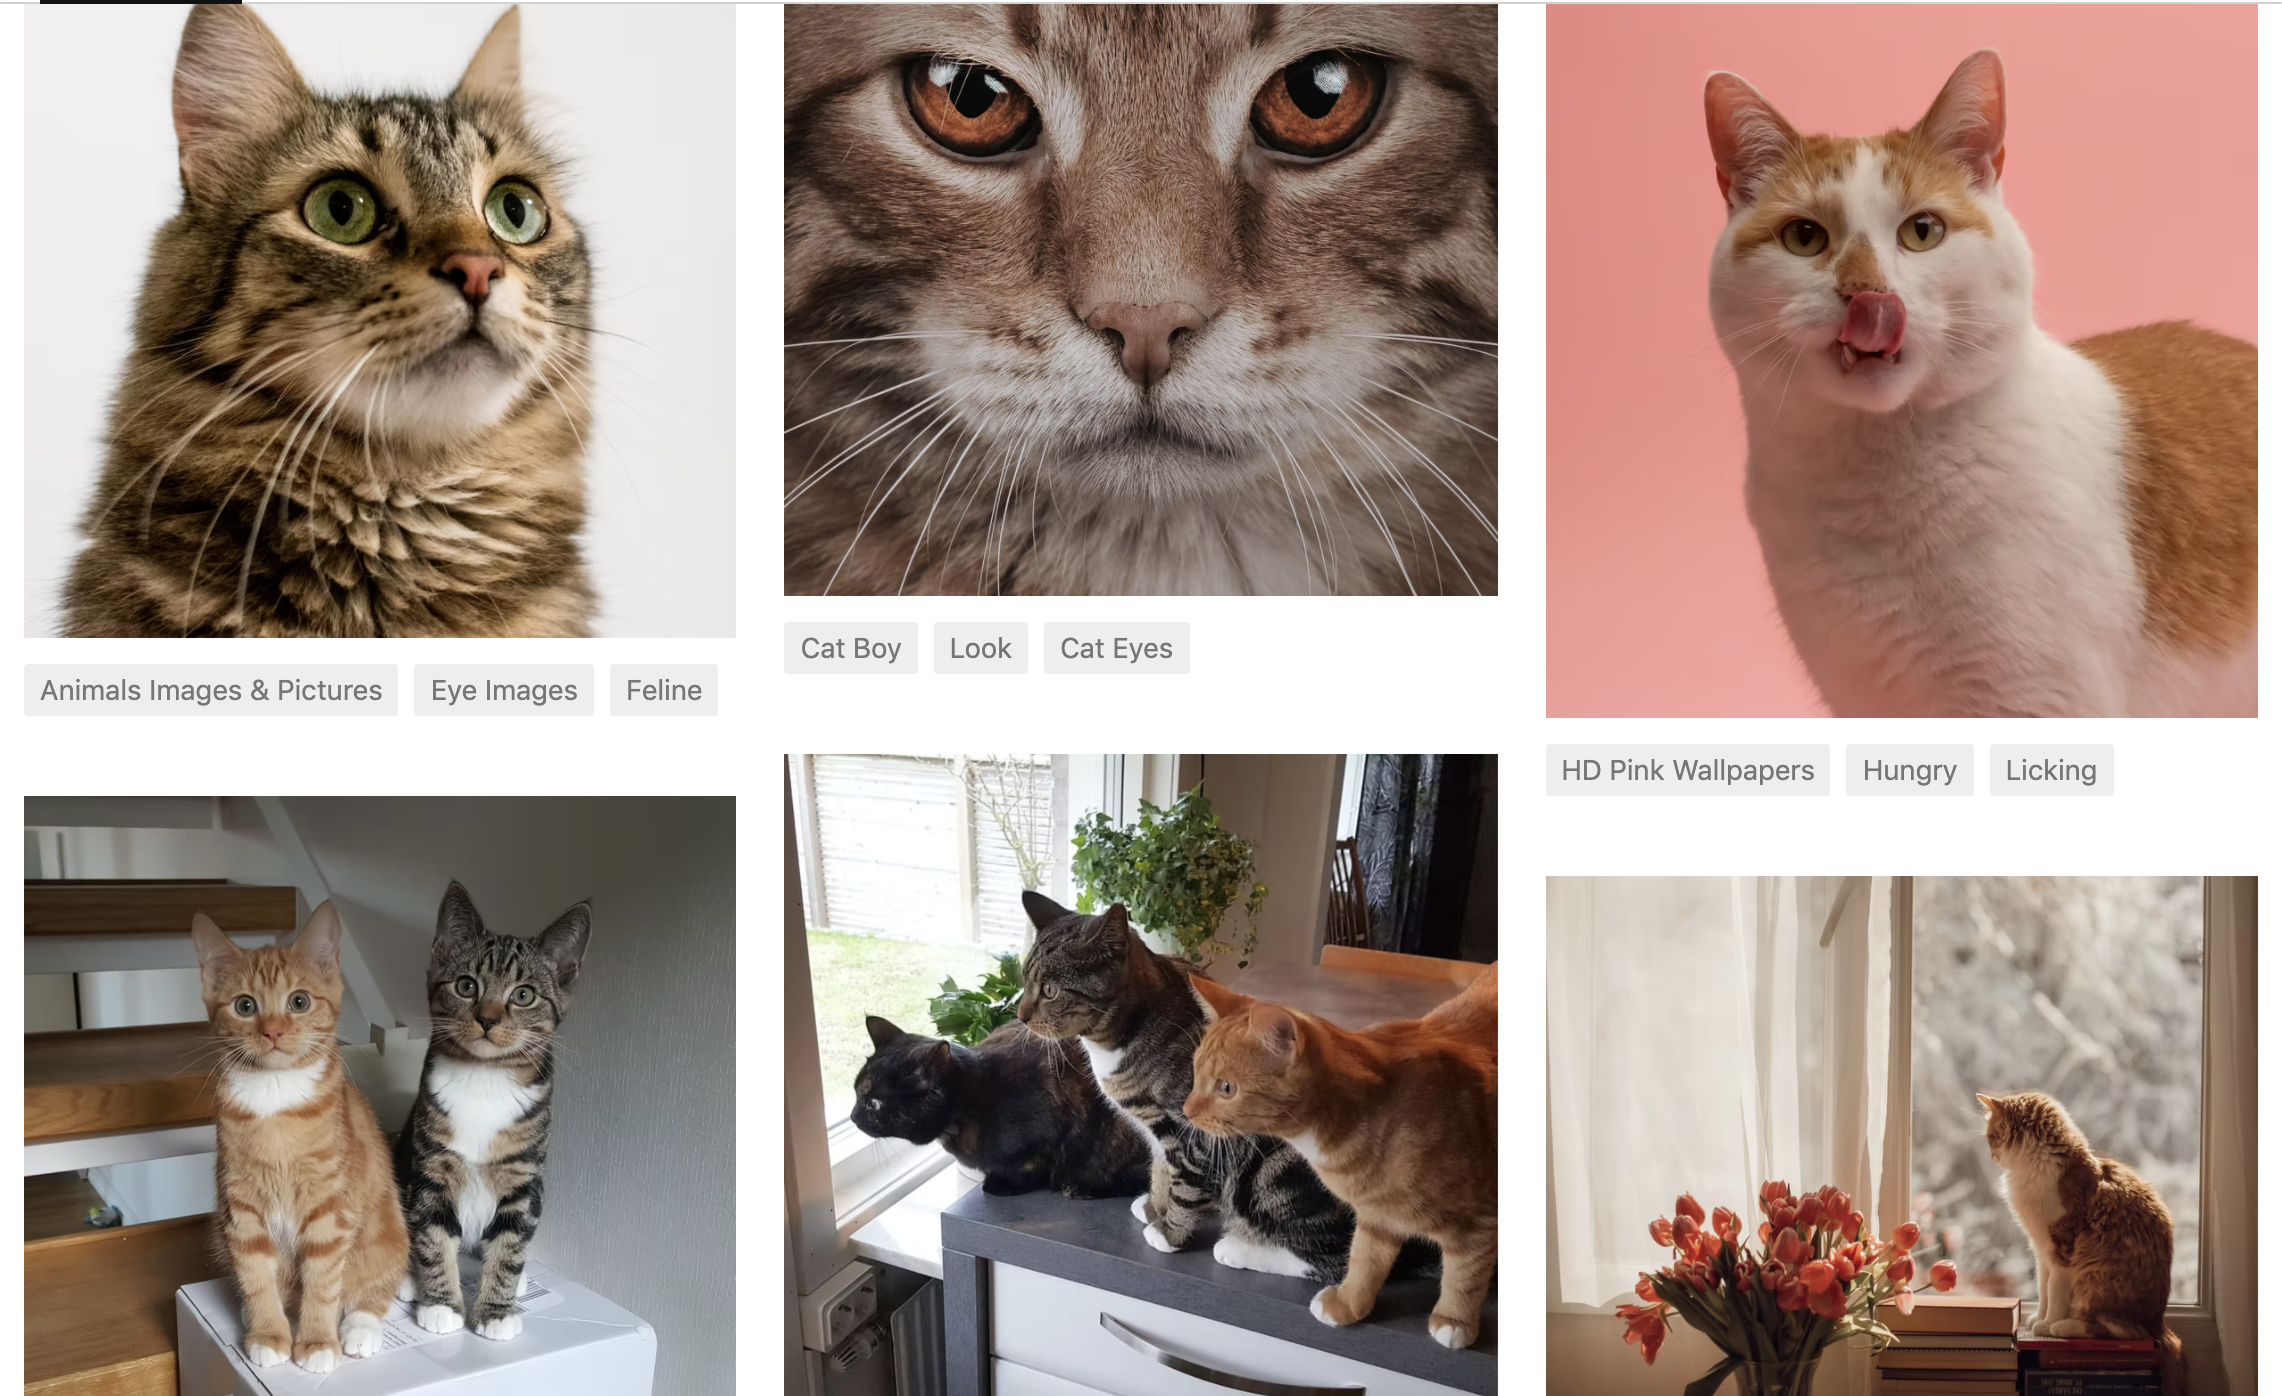 A screenshot of several pictures of cats found in Unsplash.